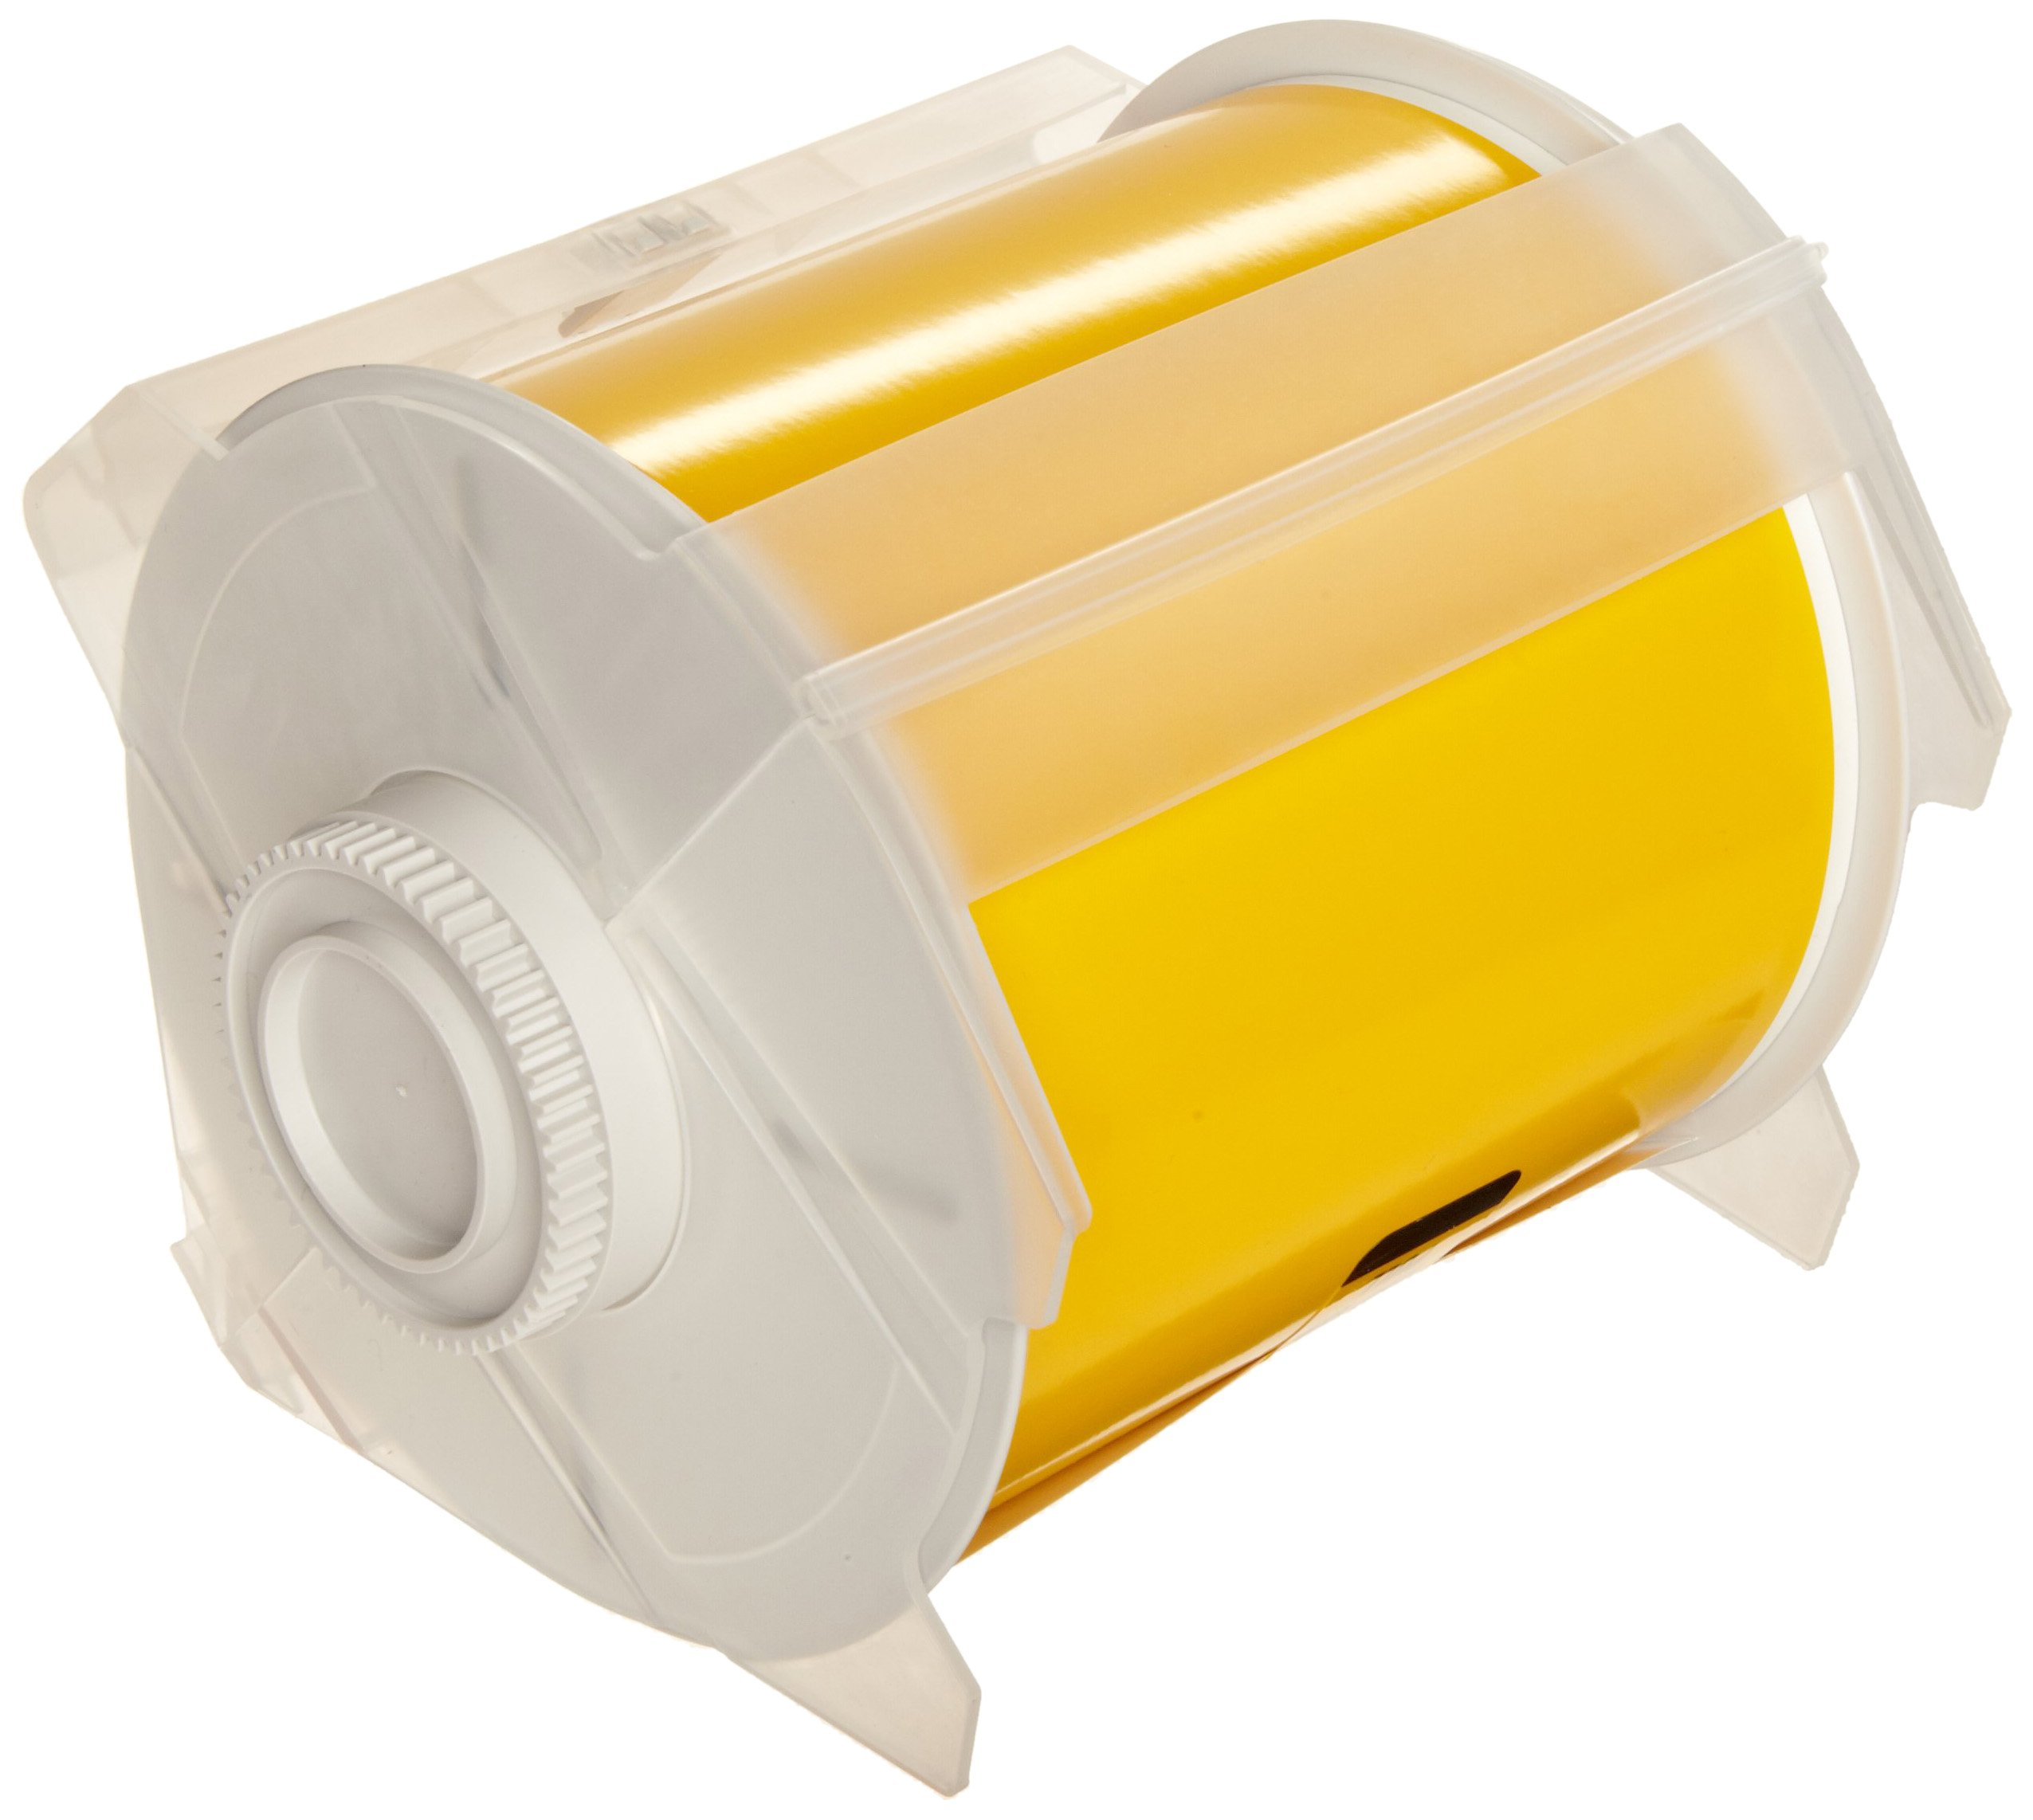 Brady High Adhesion Vinyl Label Tape (113114) - Yellow Vinyl Film - Compatible with GlobalMark Industrial Label Printer - 100' Length, 4'' Width